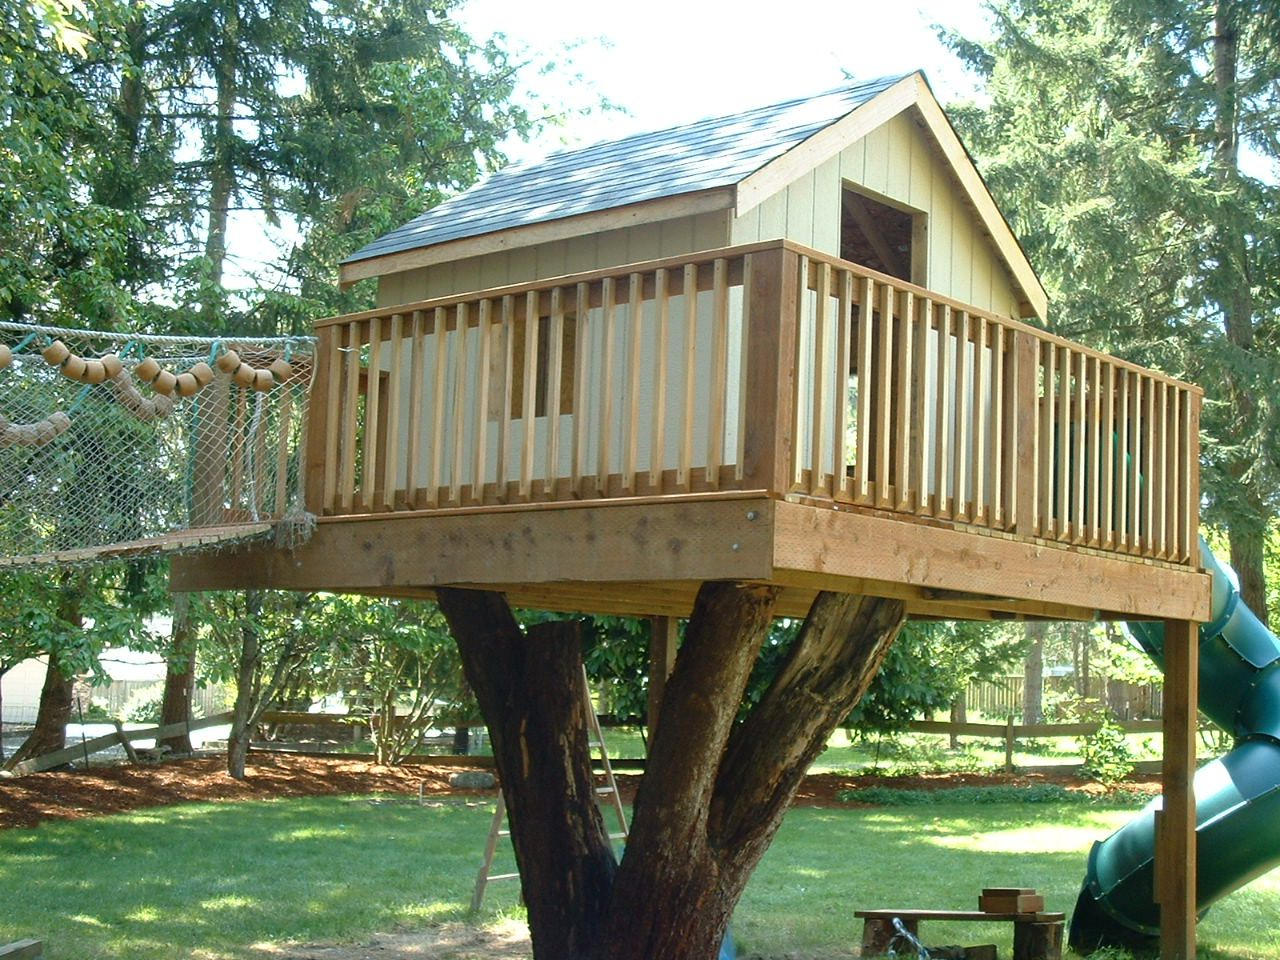 Rotating Cube Storage Tower | Tree houses, Treehouse and Play houses